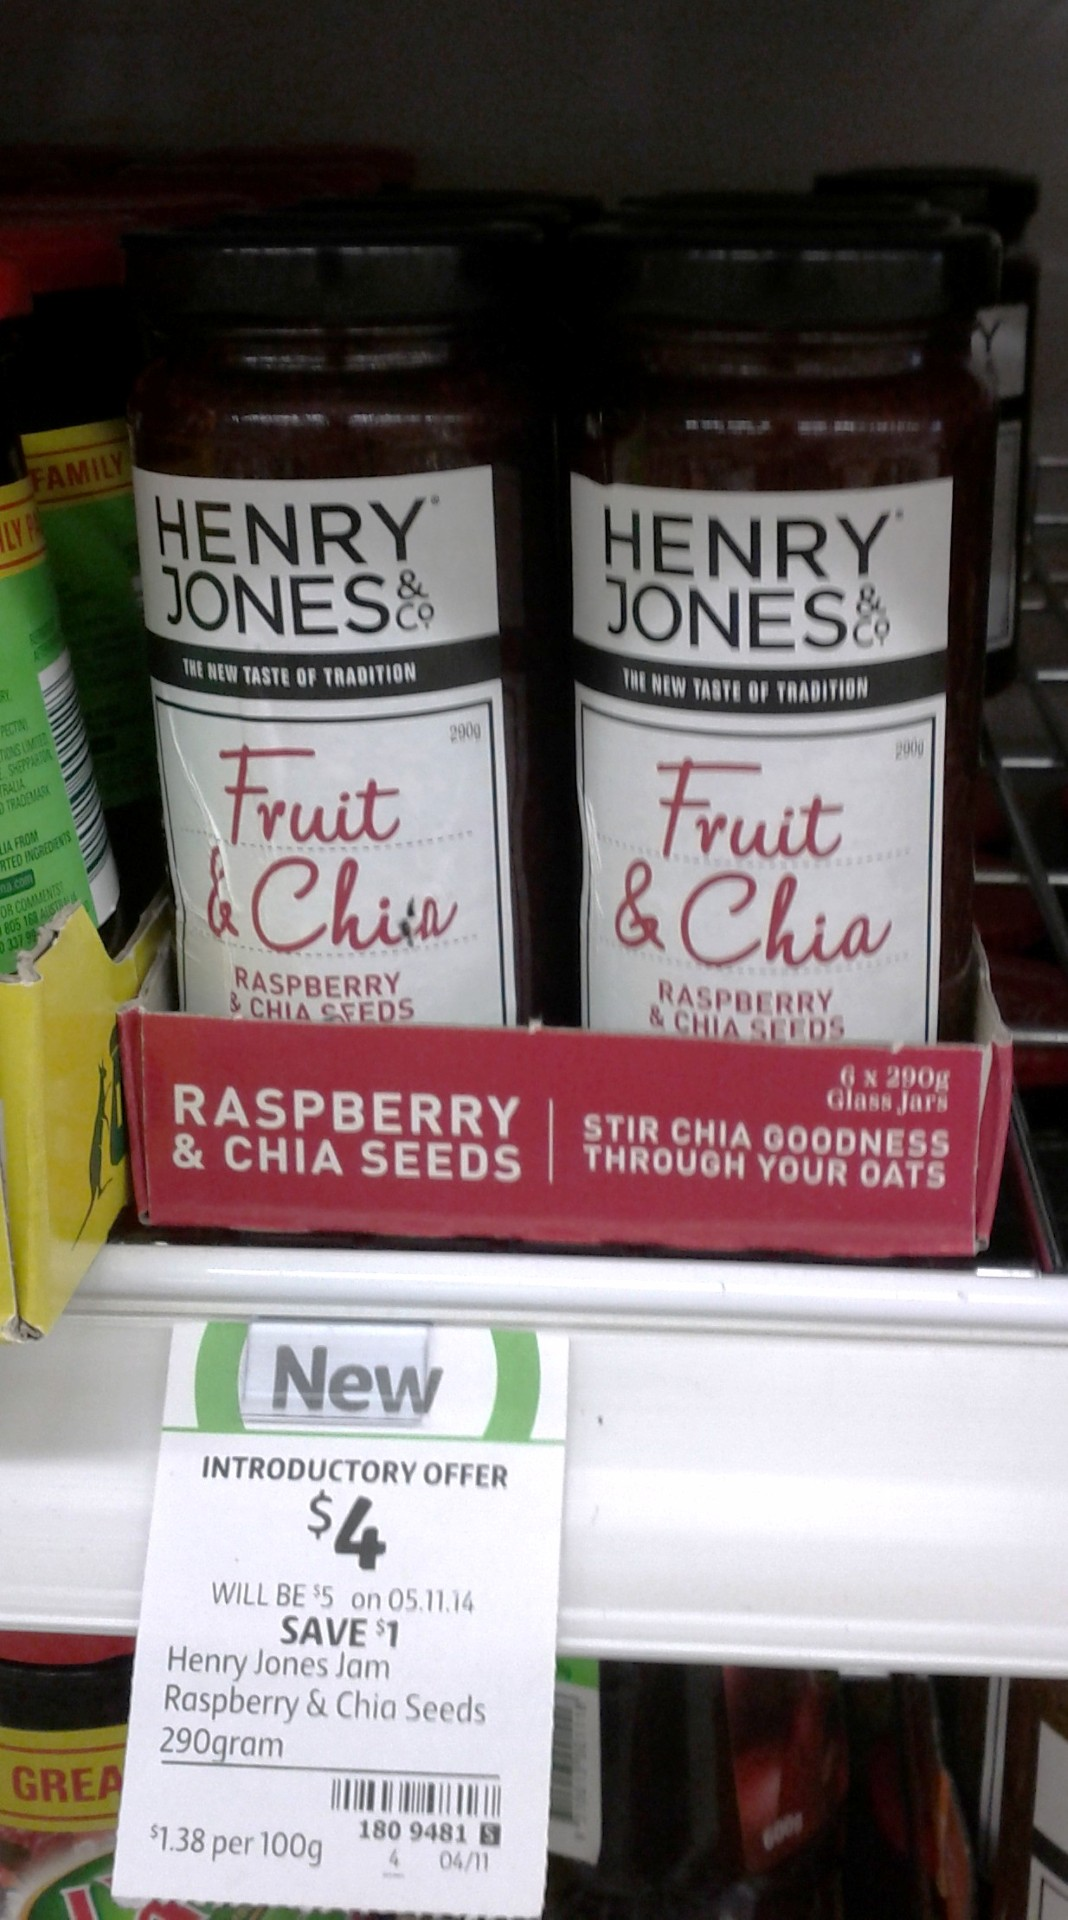 Henry Jones 290g Rasbperry & Chia Seeds